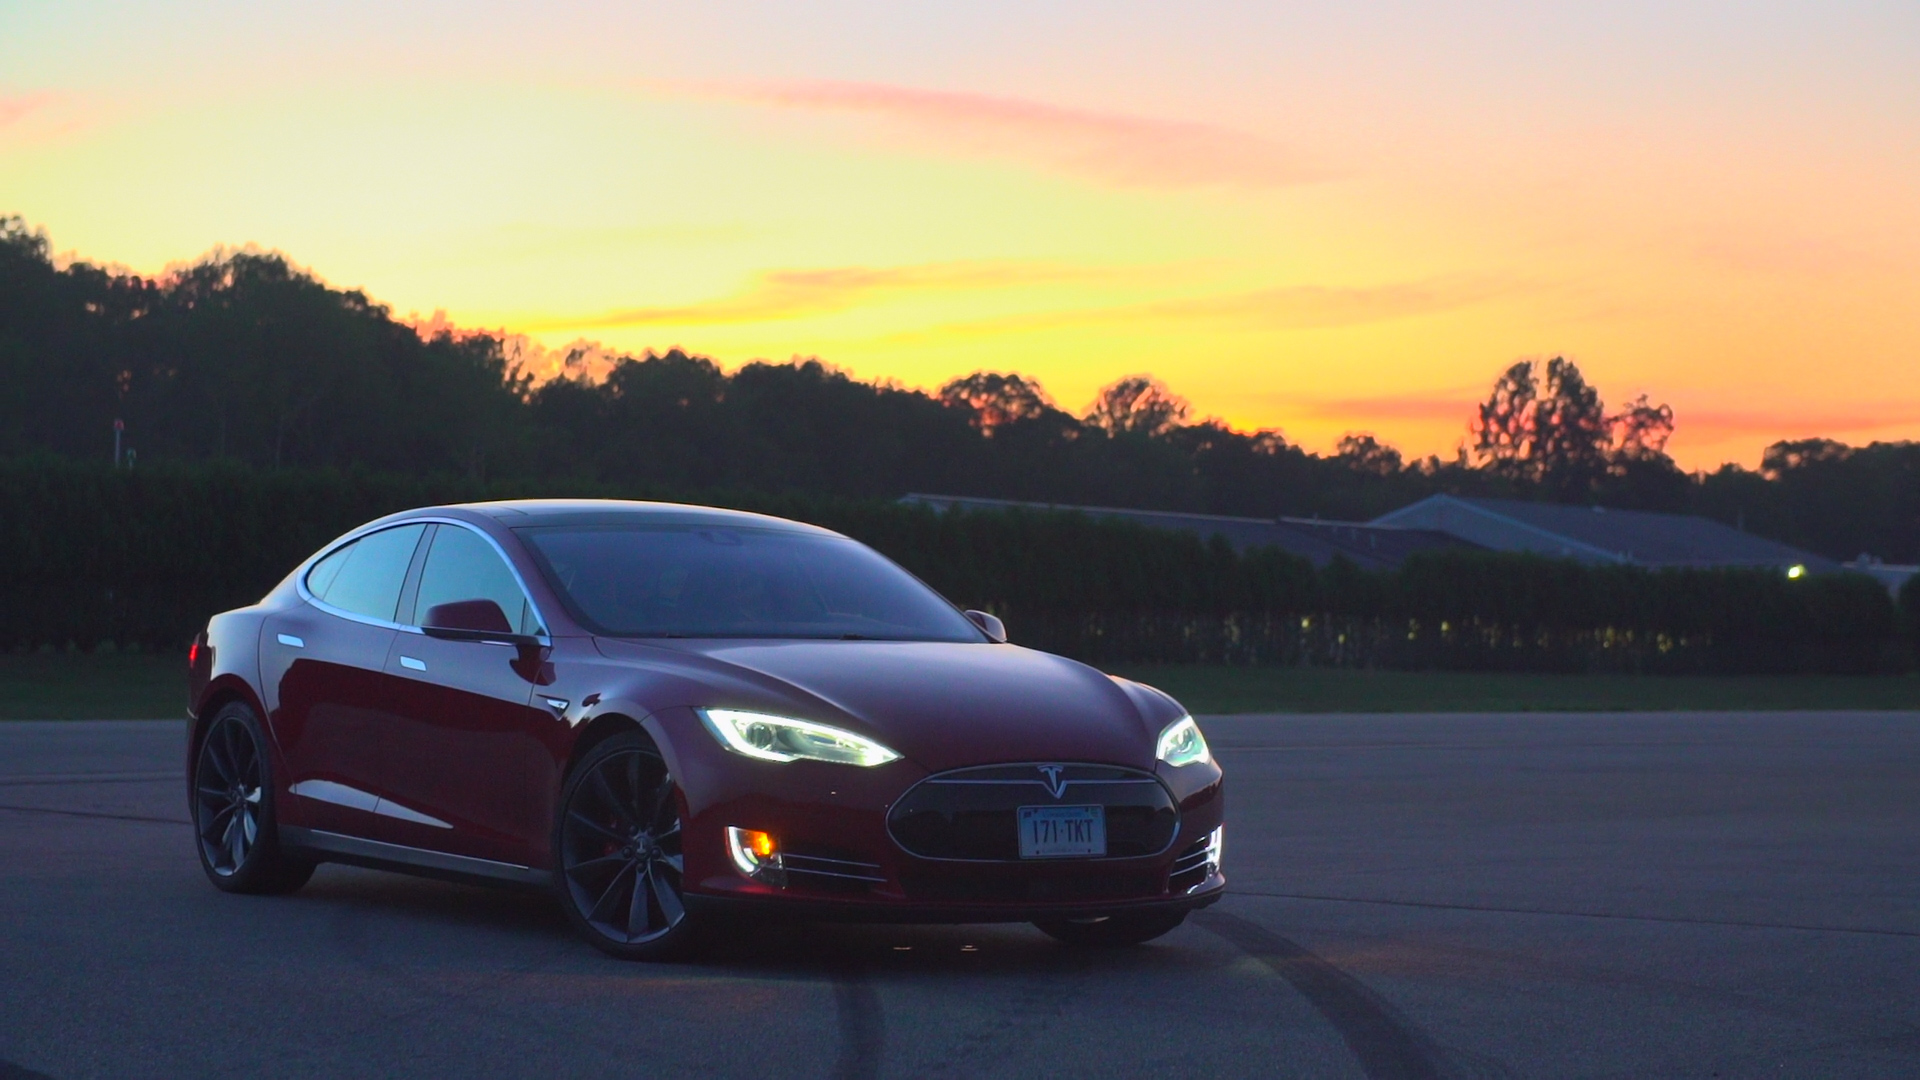 Tesla Model S P85D Earns Top Road Test Score - Consumer Reports